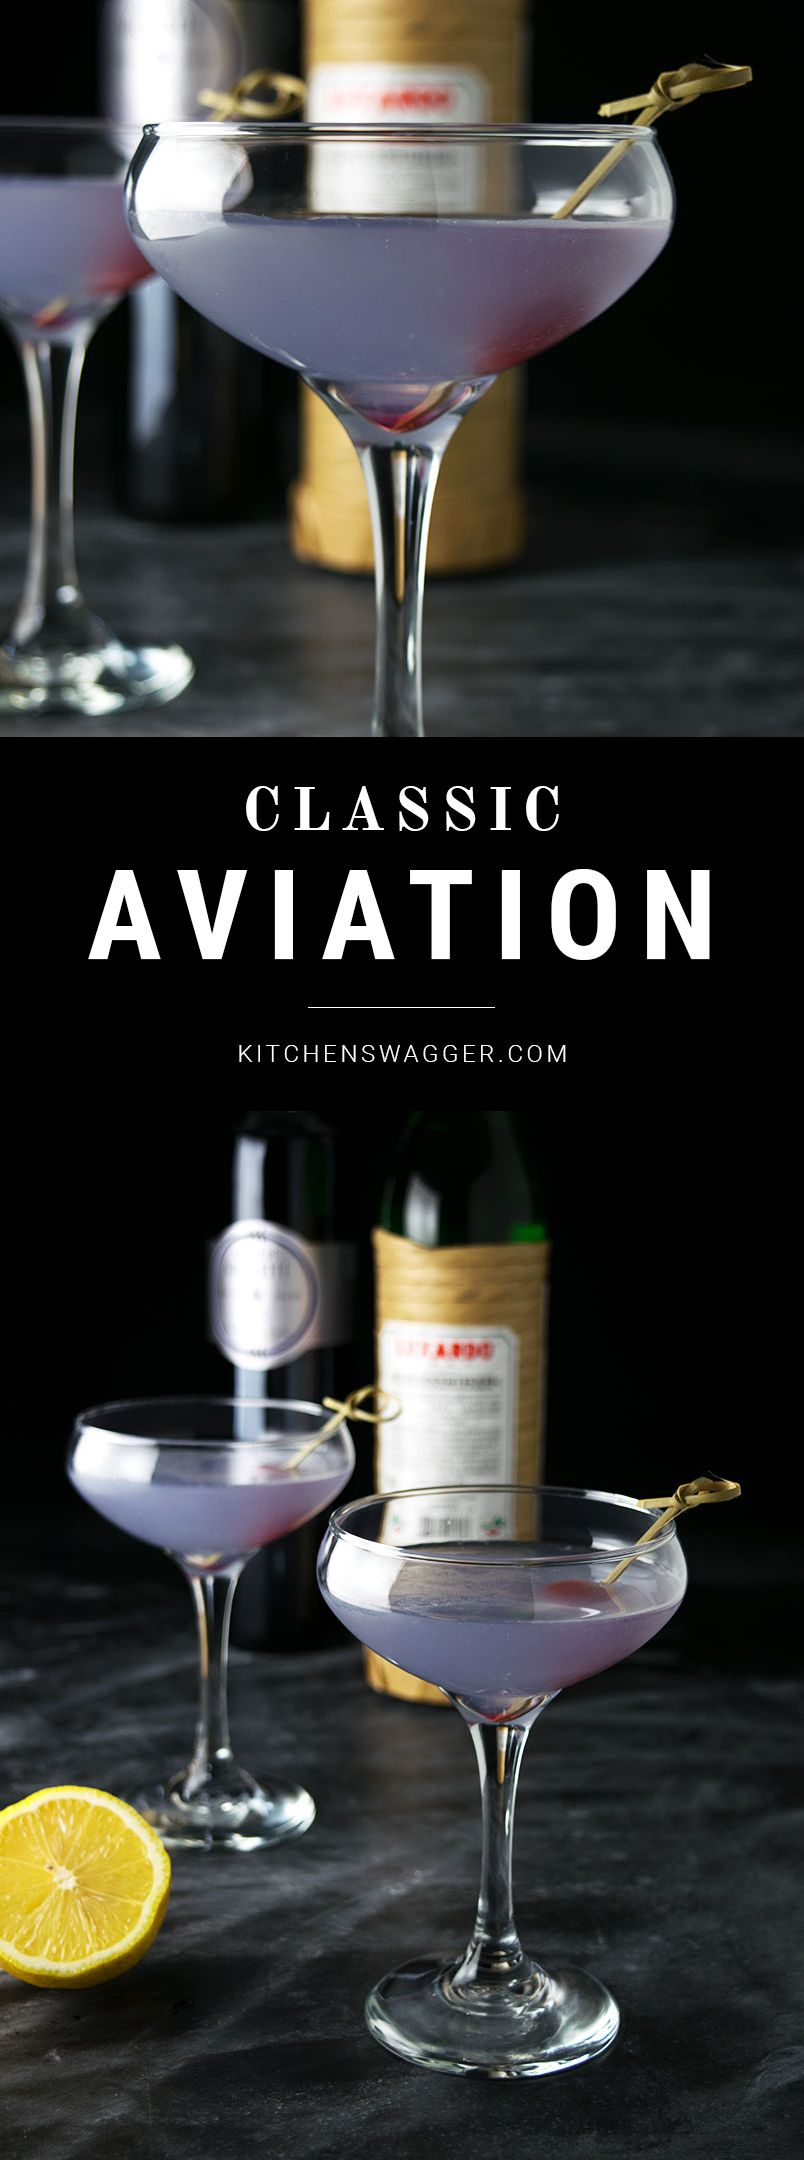 The classic Aviation cocktail is smooth, flowery, assertive, yet sweet.